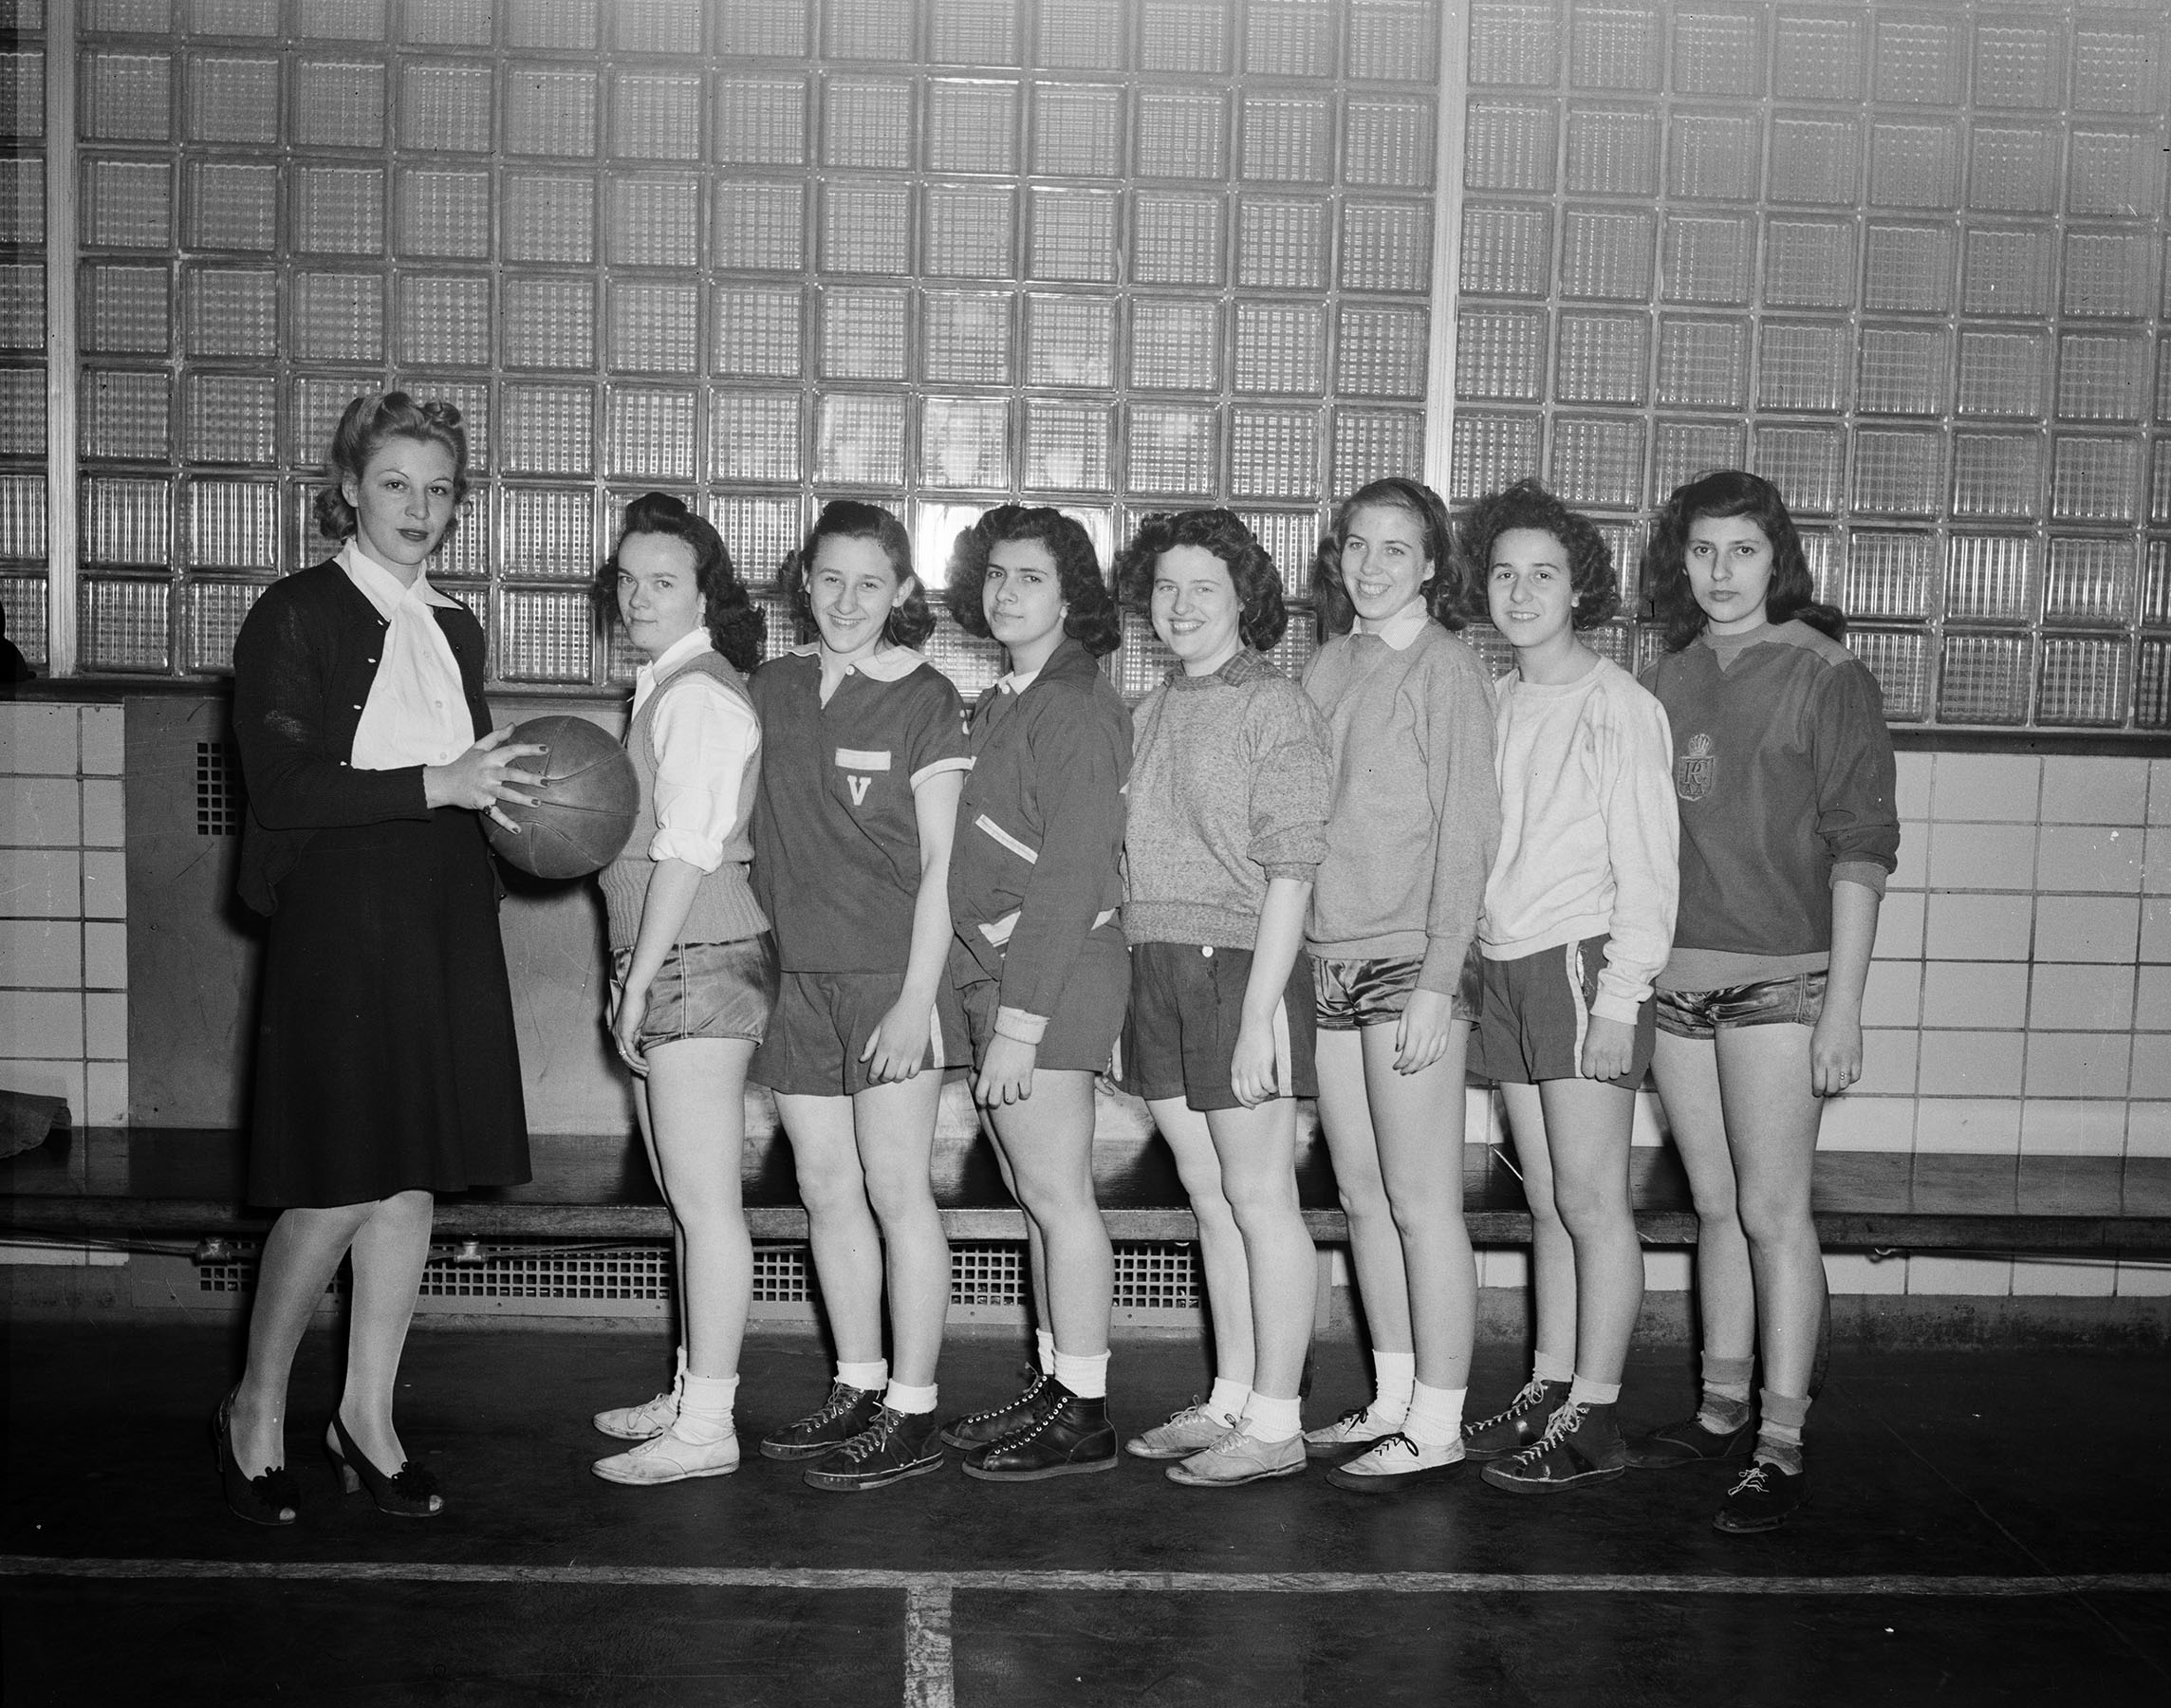 DPR_24008: Basketball tournament Betsy Head at McCarren Park Playground. Coach Caral Deimling, Margaret Hylend, Roseanna Brica, Jean Percella, Theresa McGuire, Ann Bousson, Theresalinn Vaccaro, Estell Kestenbaum, March 9, 1945. Department of Parks and Recreation Collection, NYC Municipal Archives.